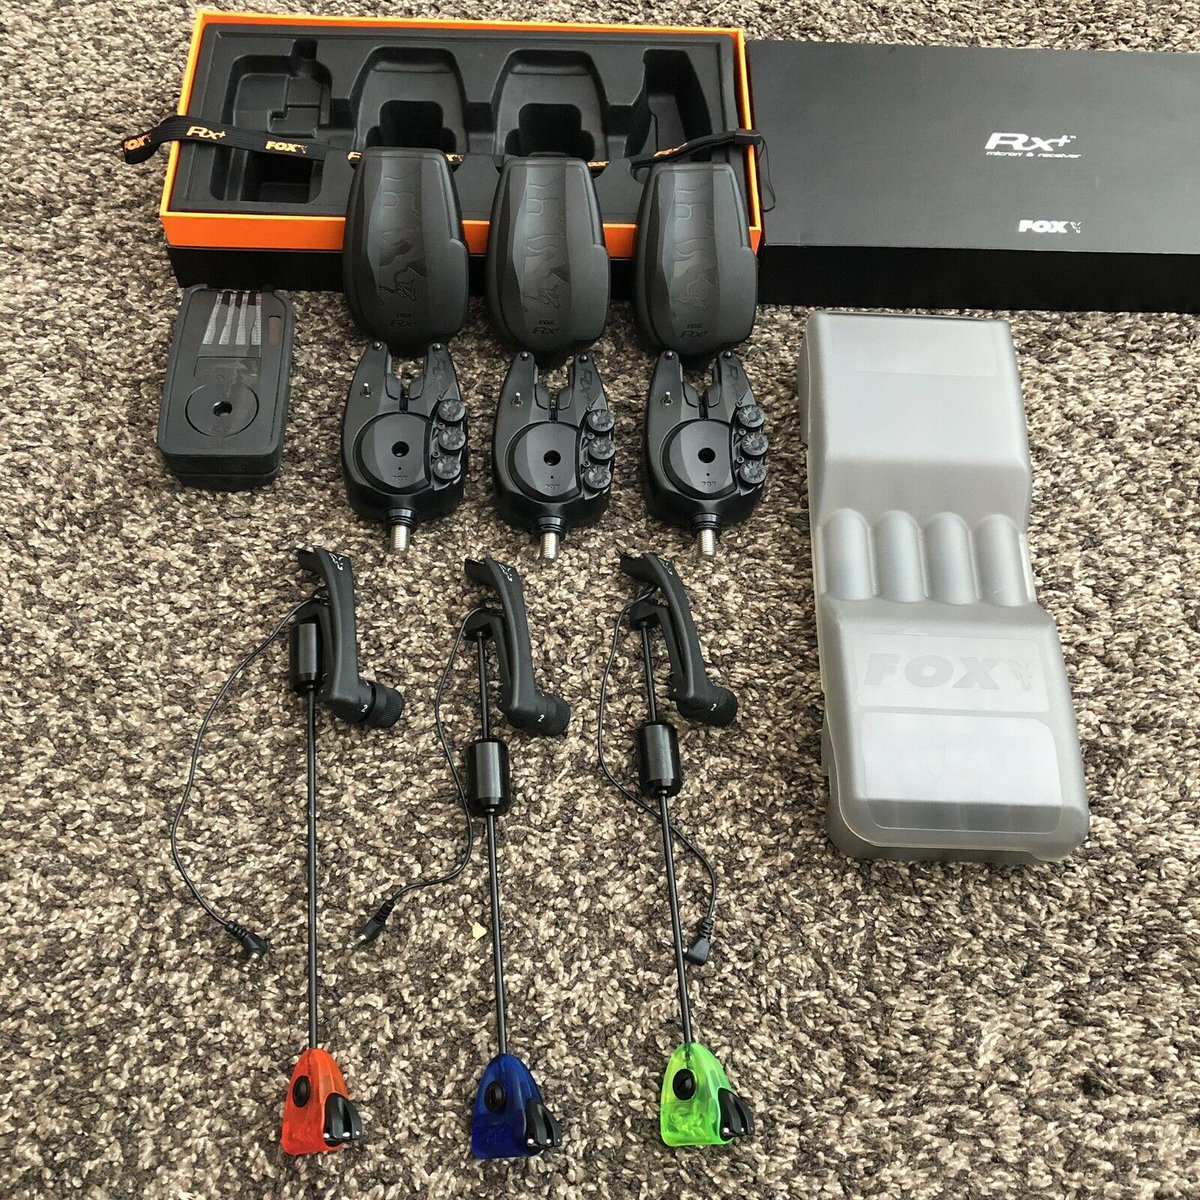 Ad - Fox RX+ 3-Rod Presentation Set For Sale On eBay here -->> https://t.co/wq4PT9wB08  #carpf